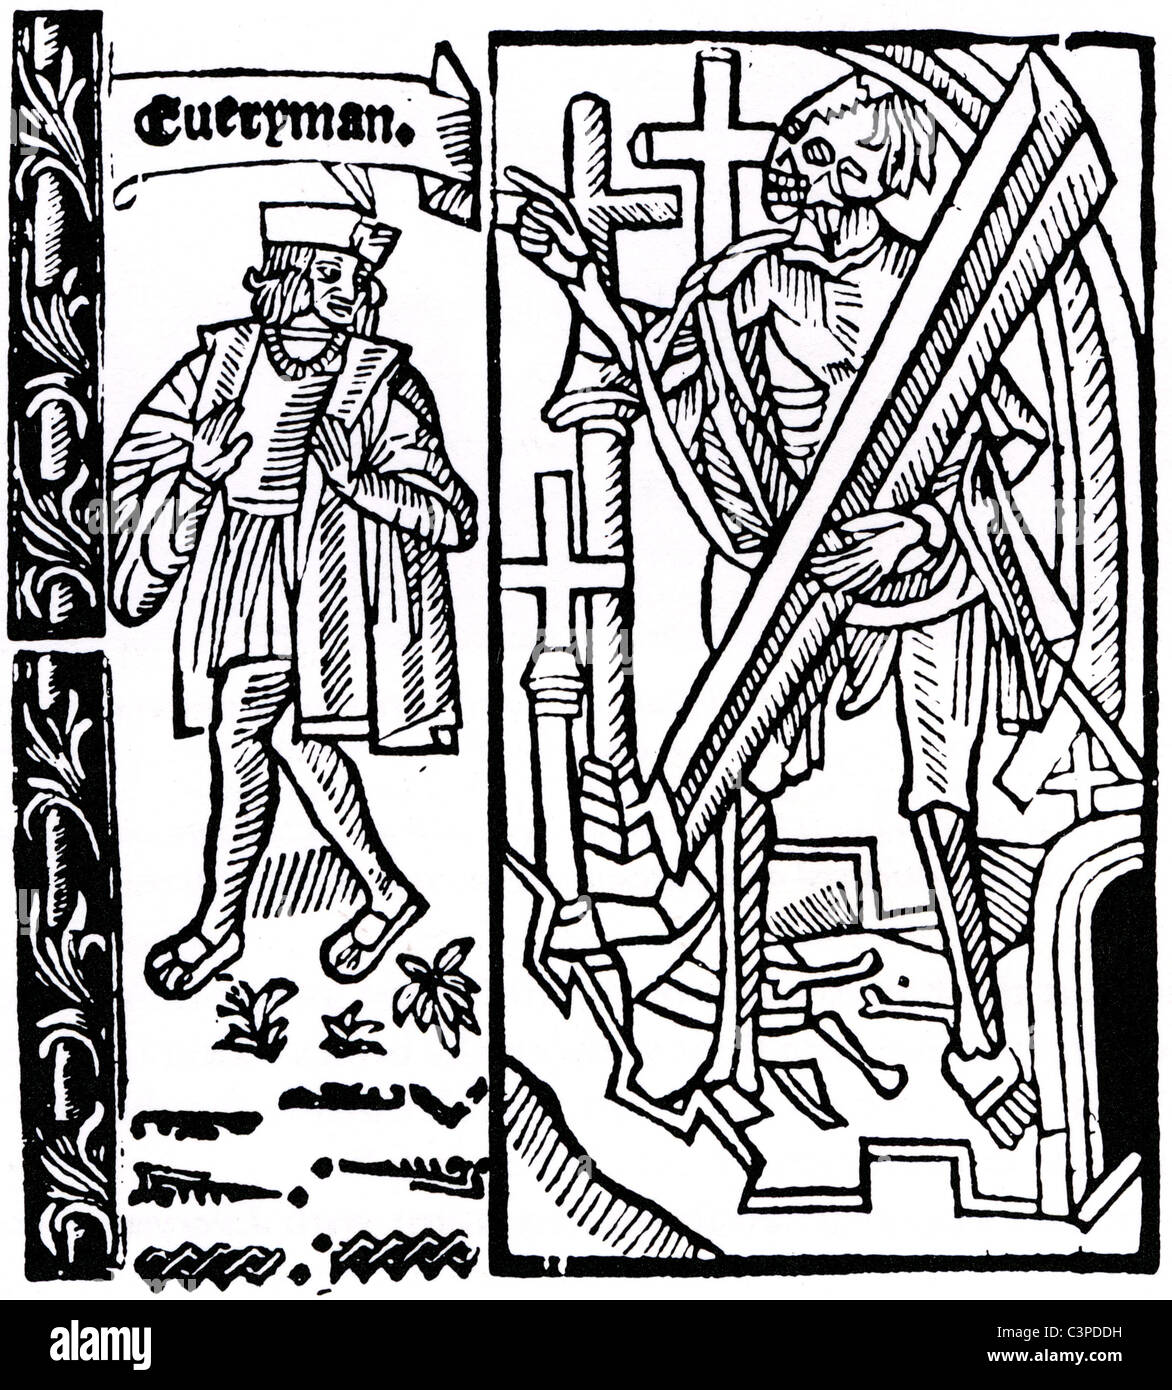 EVERYMAN Woodcut from title page of 1530 edition of the Medieval morality  play